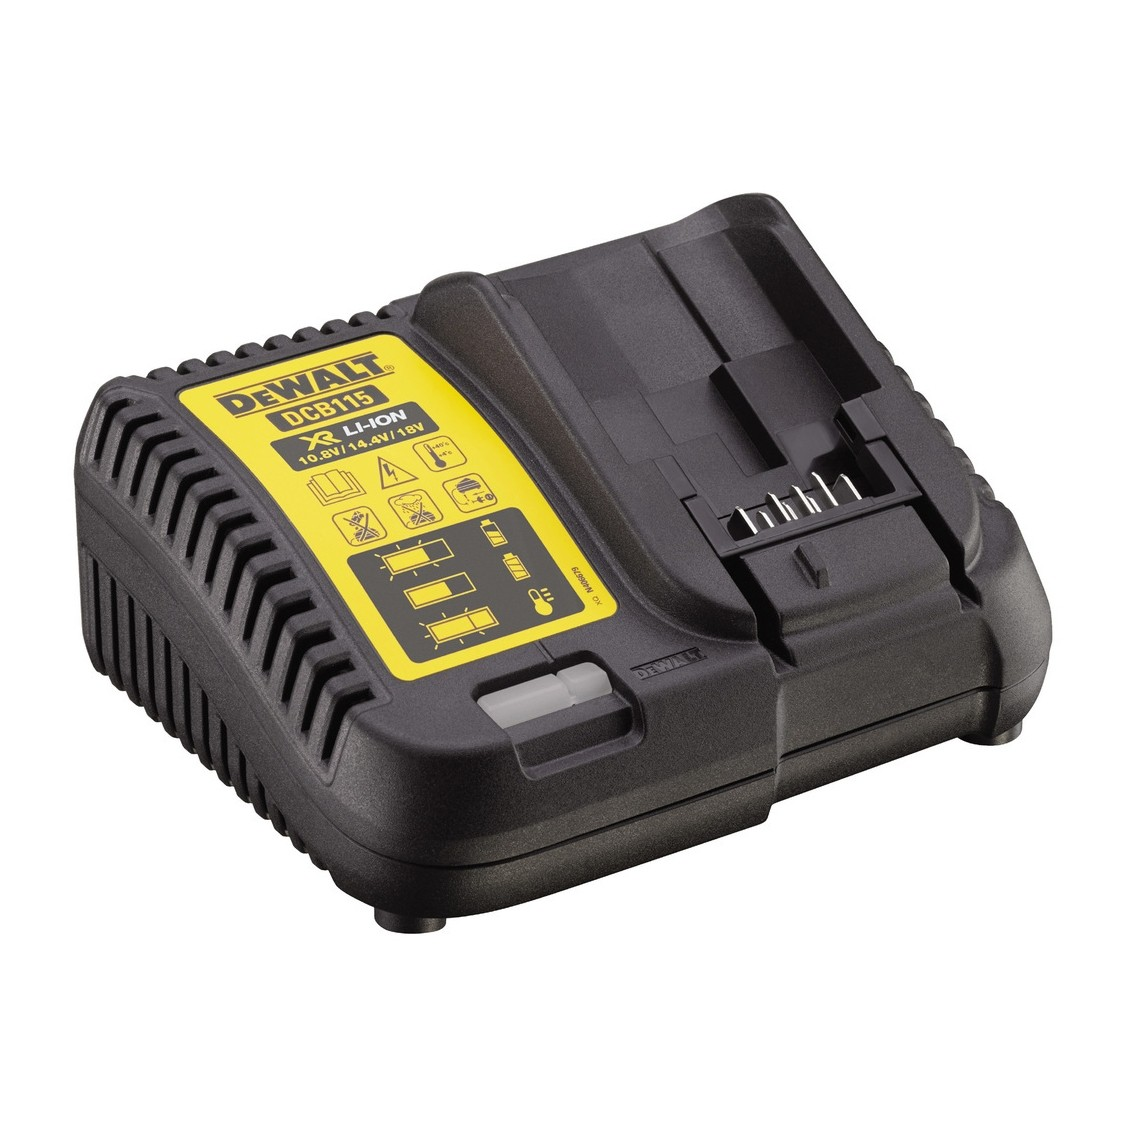 Dewalt Dcb115 Ultra Compact Battery Charger For 10 8v 14